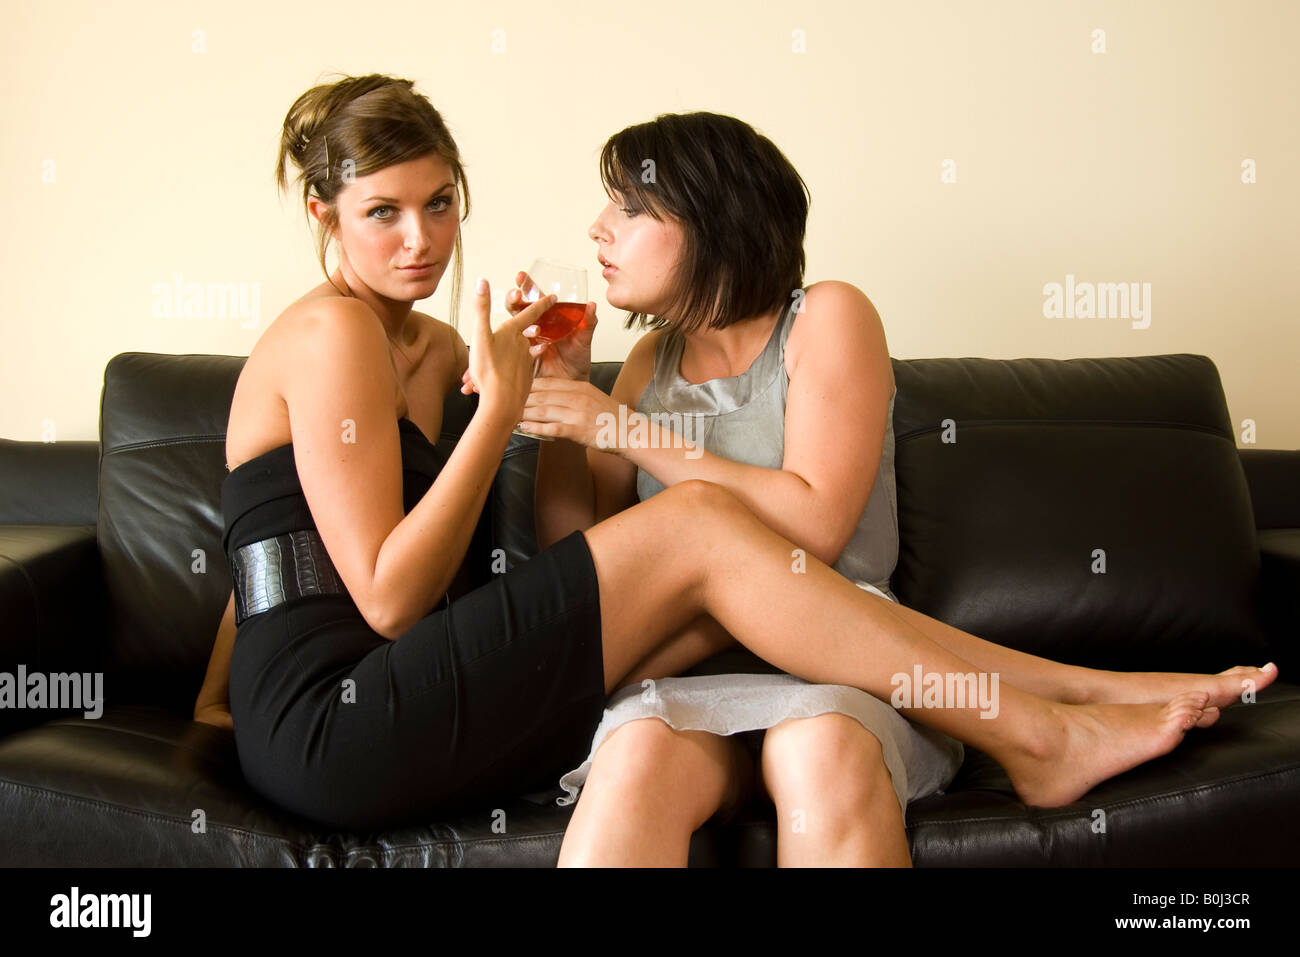 Image result for Two Drunk Women